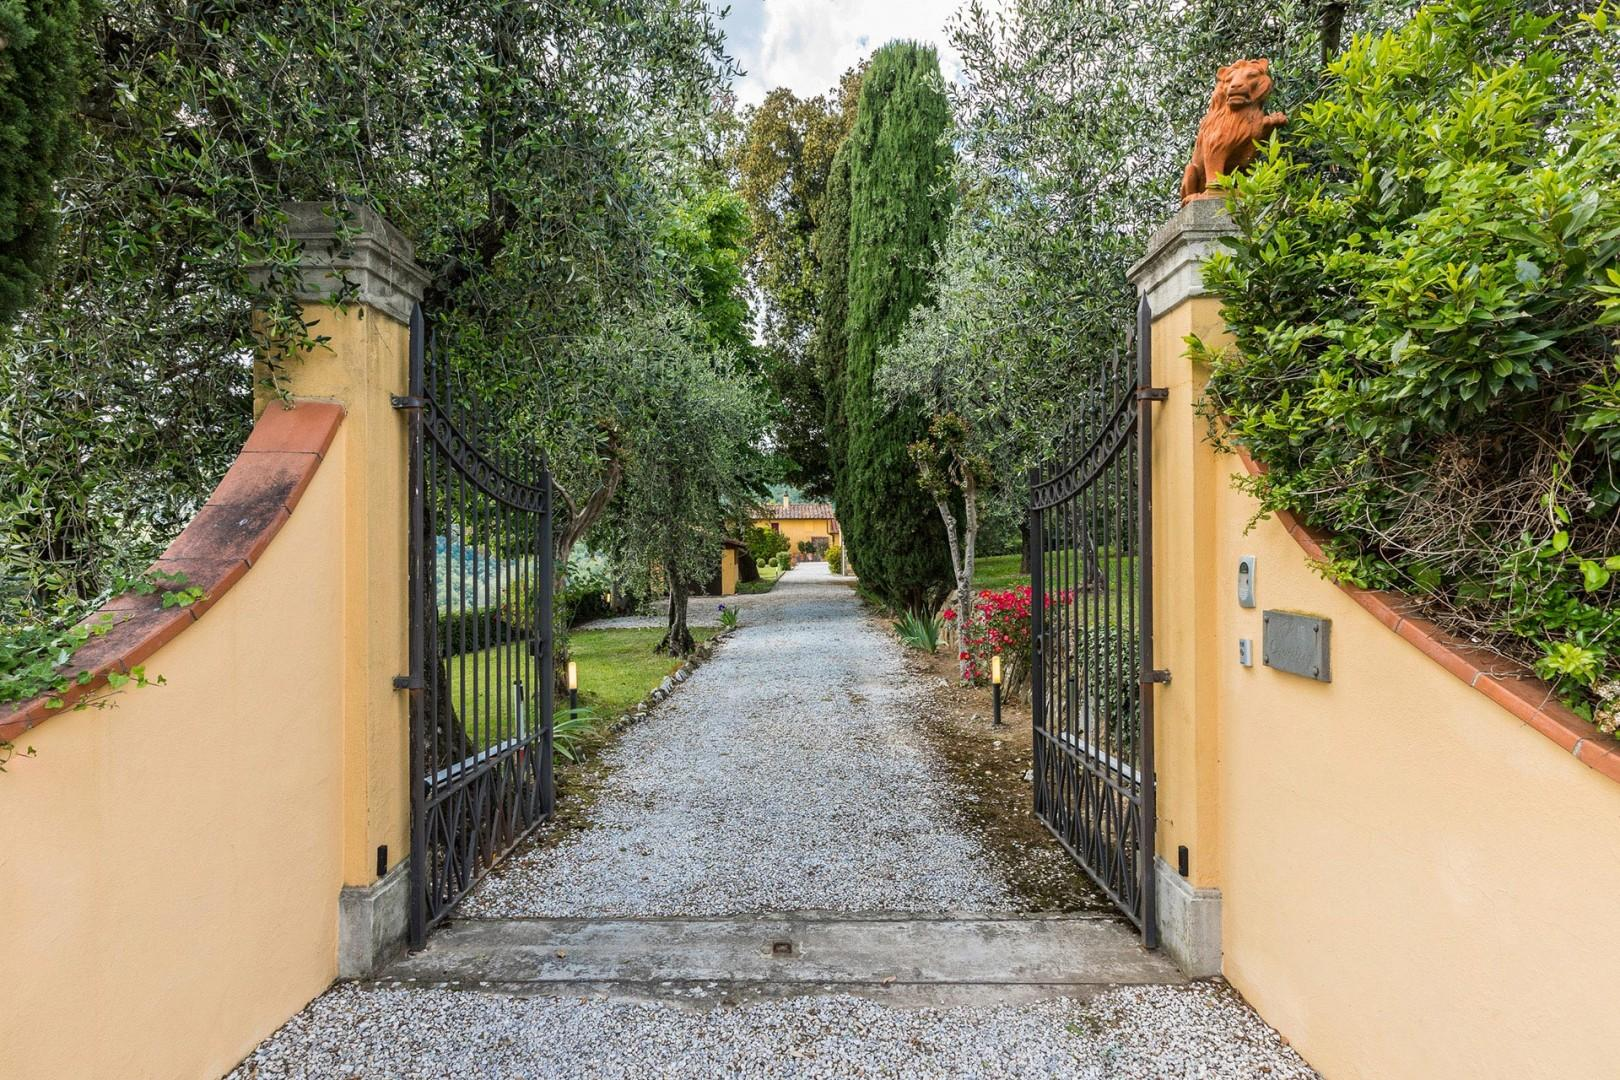 This private estate has a gate and is fenced.